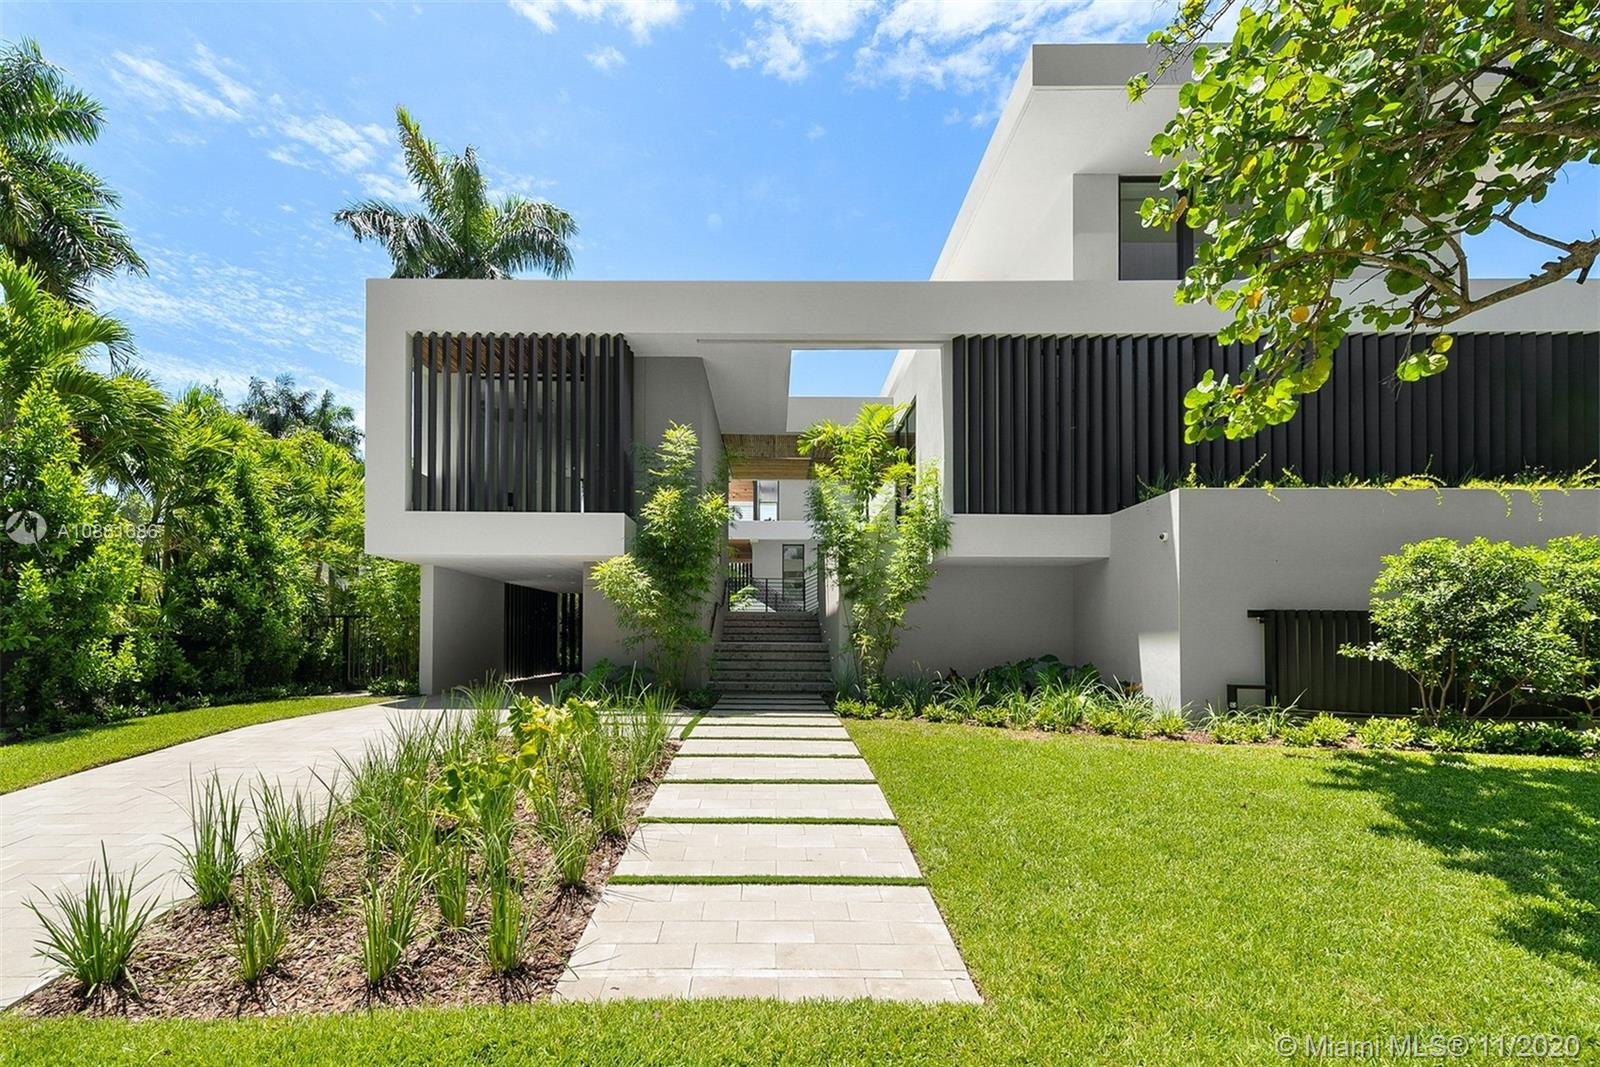 Brand new home on sought-after Entrada Estates gated community in Coconut Grove. Designed by Praxis' Jose Sanchez and built by ICH Builders, this modern Smart home is warm & elegant with clean lines and superb finishes. Boasting 7369 SF under air, the home features floor to ceiling windows that drape it in natural light, thoughtful floor plan, 250+ glass wine room, elevator, additional large room ideal as a media room/man cave/office, second family room on the top floor, 5 carports & plenty of storage. Gourmet kitchen w/ top of the line appliances, ample pantry & gorgeous countertops and Mia Cucina cabinets. Expansive grounds perfect for entertaining w/ summer kitchen & covered spaces for large gatherings. The multi-depth heated double pool allows for swimming & leisure activities.